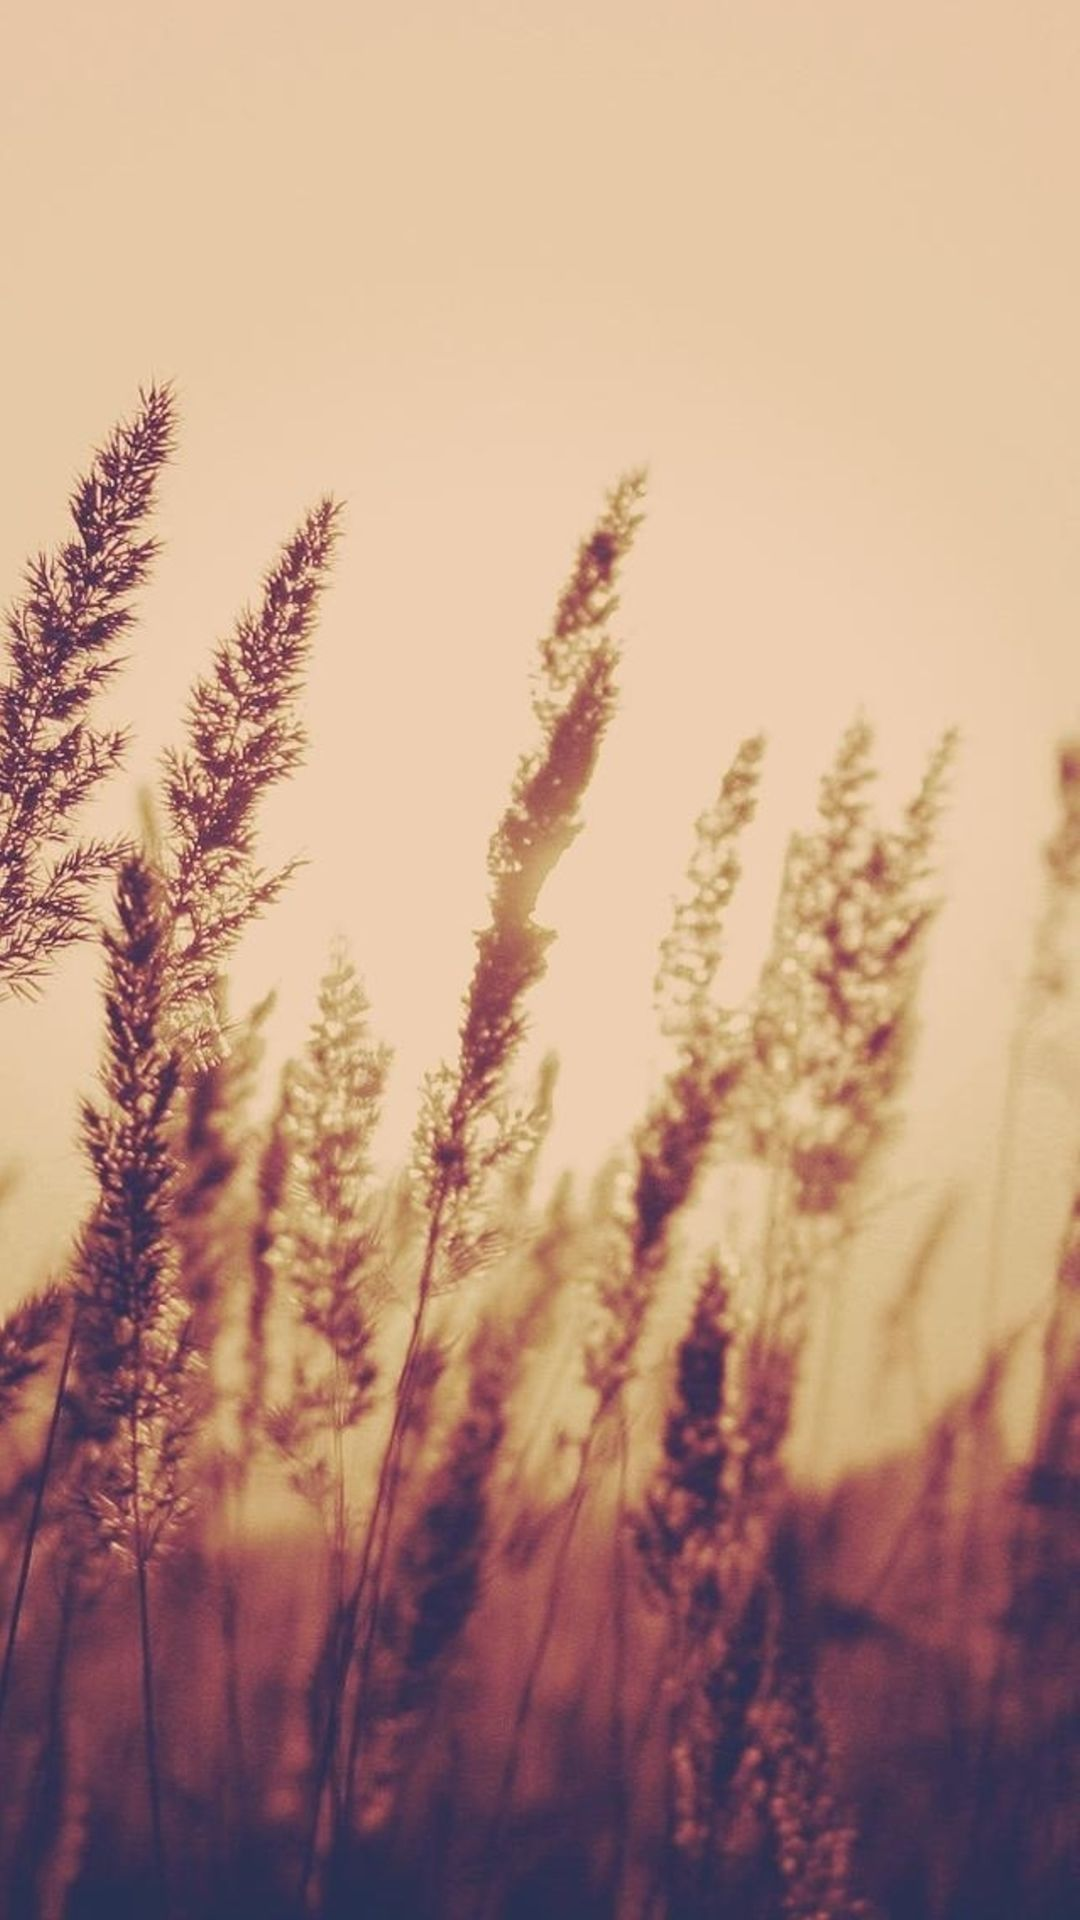 Nature Aesthetic Reed Plant Field Blur iPhone 6 wallpaper